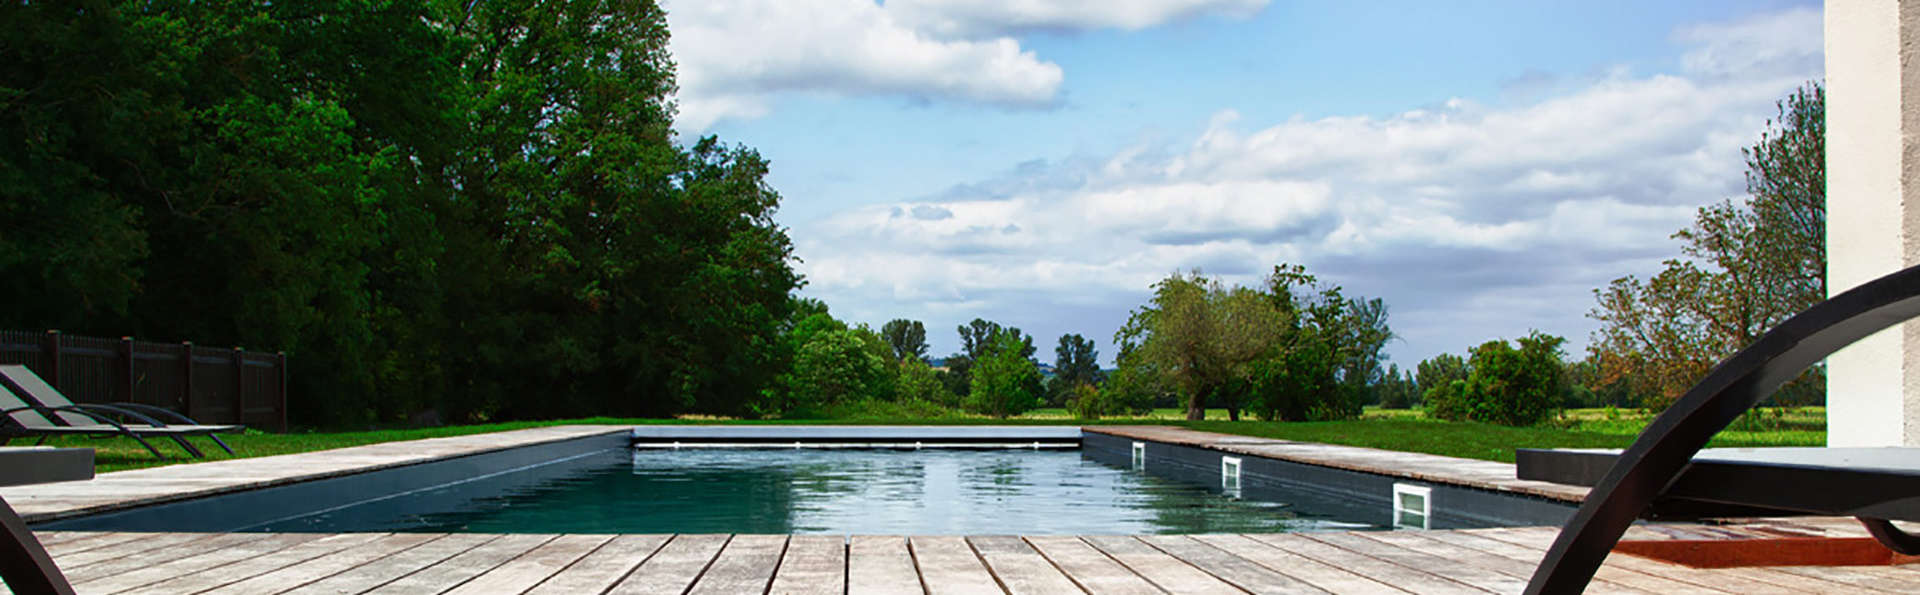 Pavillon du Château - Edit_Pool.jpg